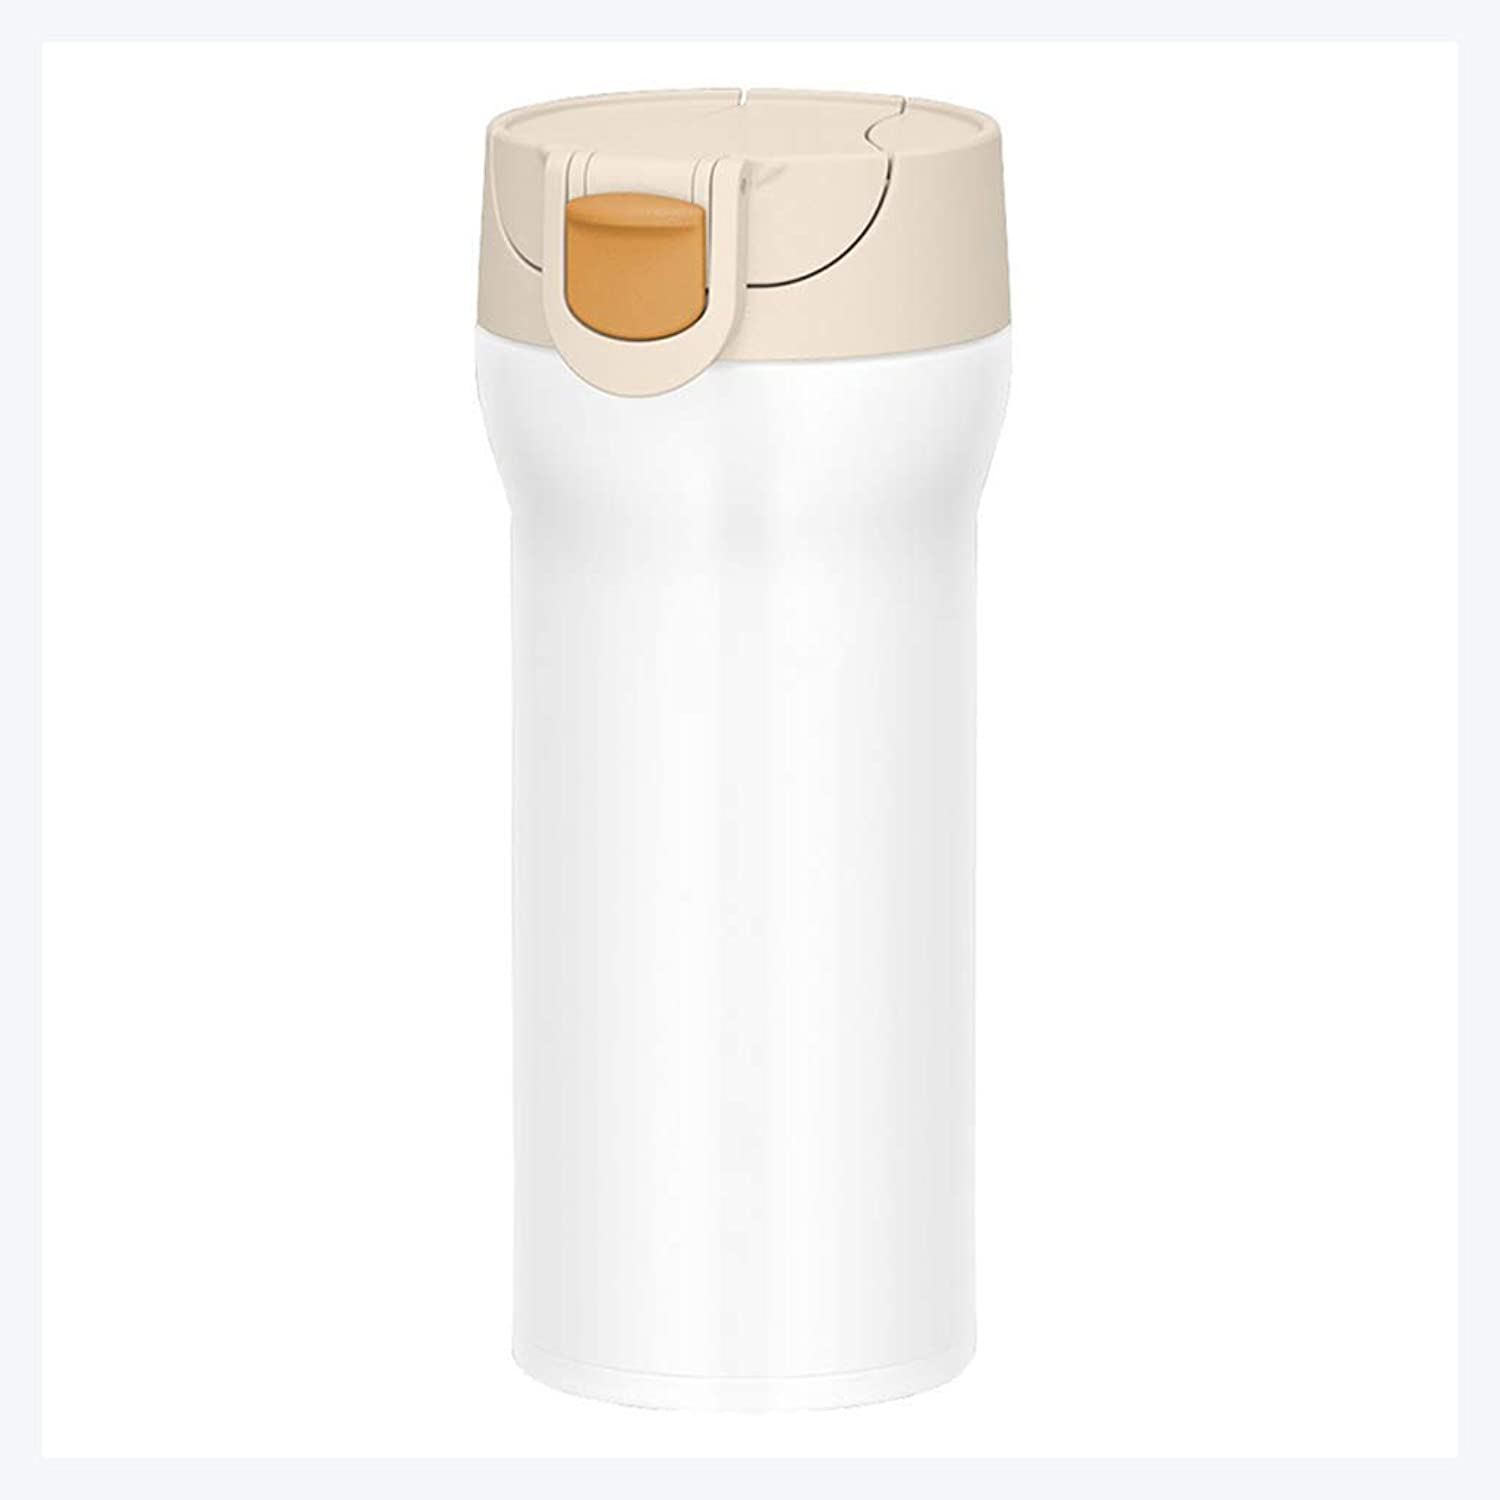 Vacuum Insulated Travel Mug Thermos One Handed Open to Drink, Double Walled & Leakproof for Hot & Cold Drink